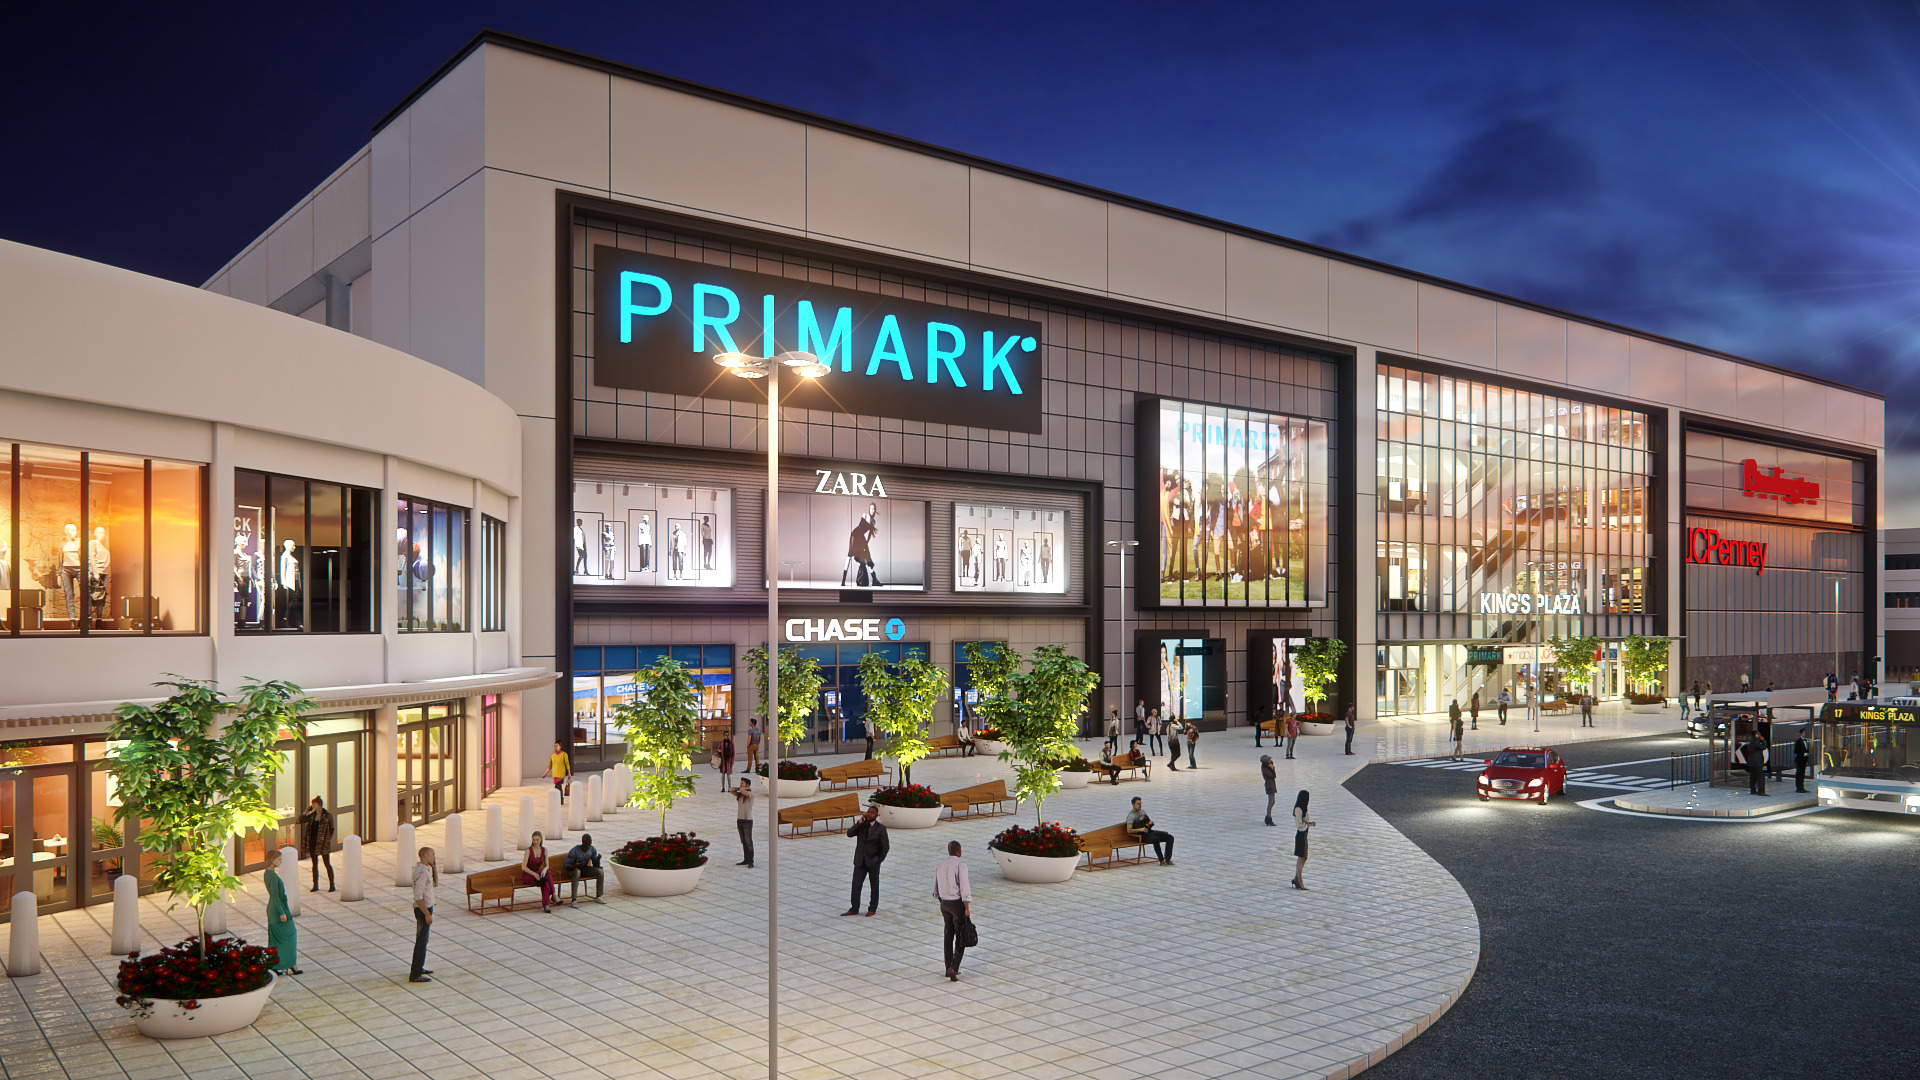 Primark Store Front Image